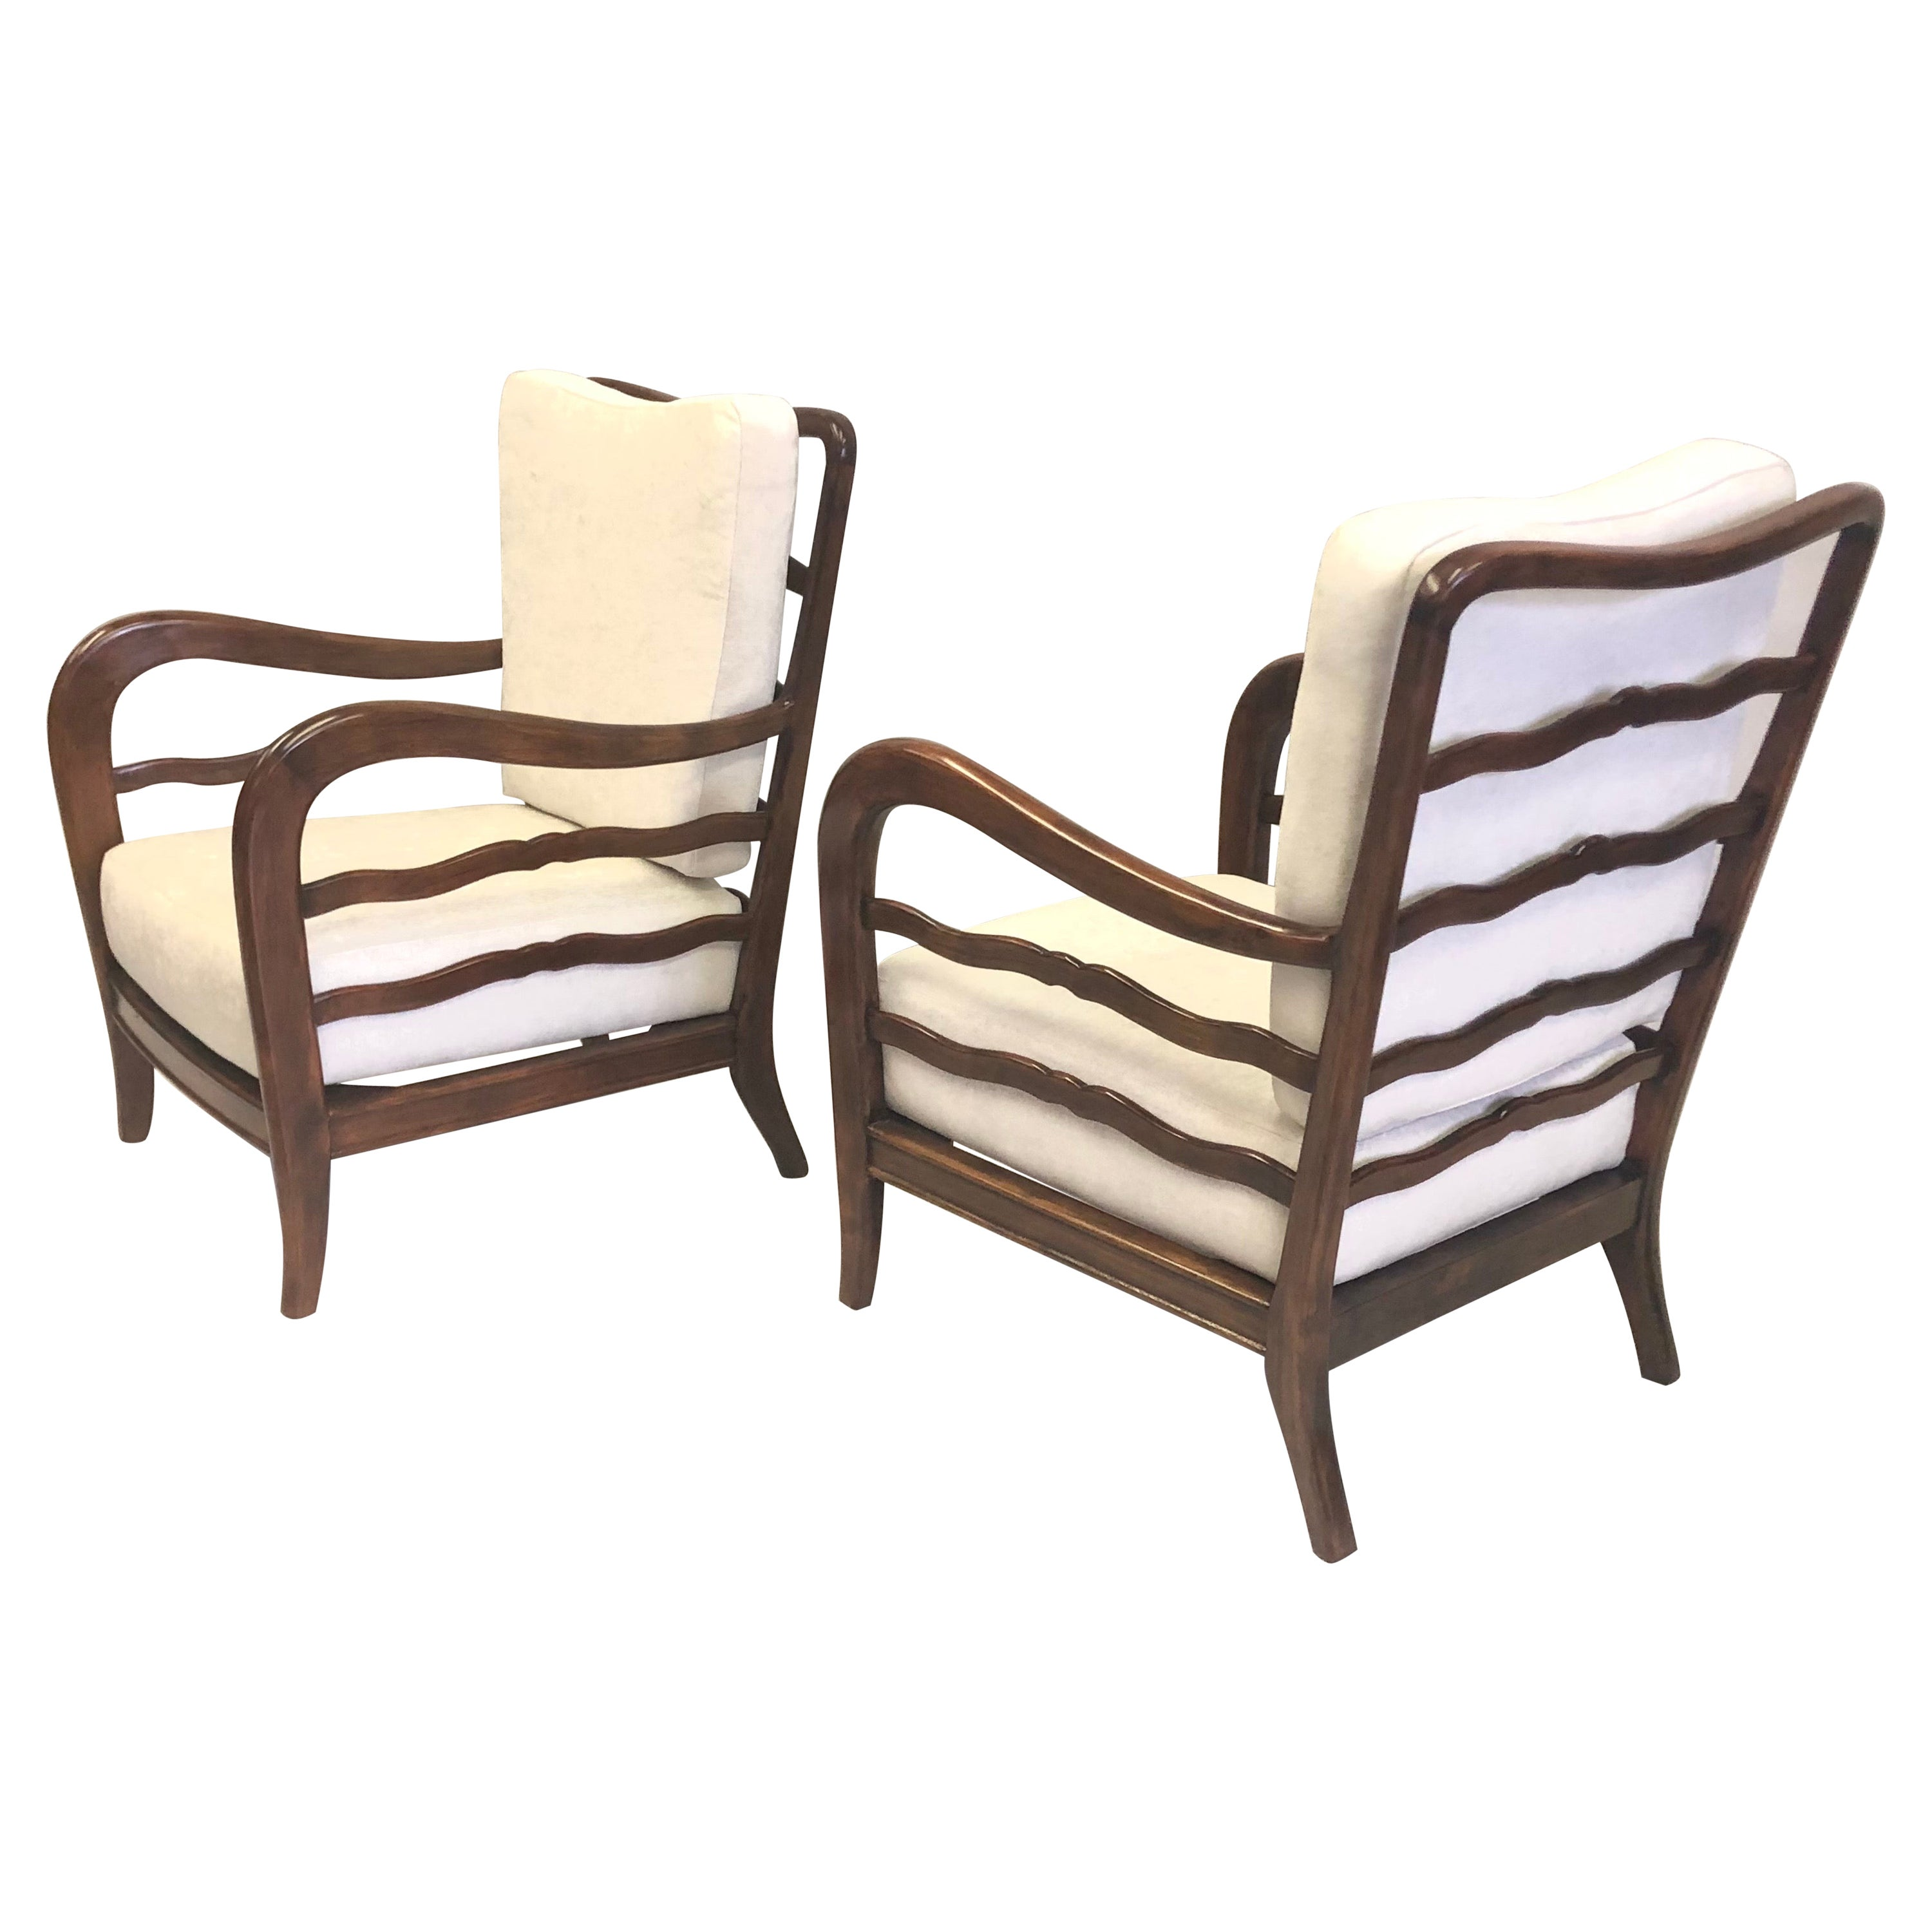 Pair of Italian Mid-Century Modern Neoclassical Cherry Armchairs by Paolo Buffa